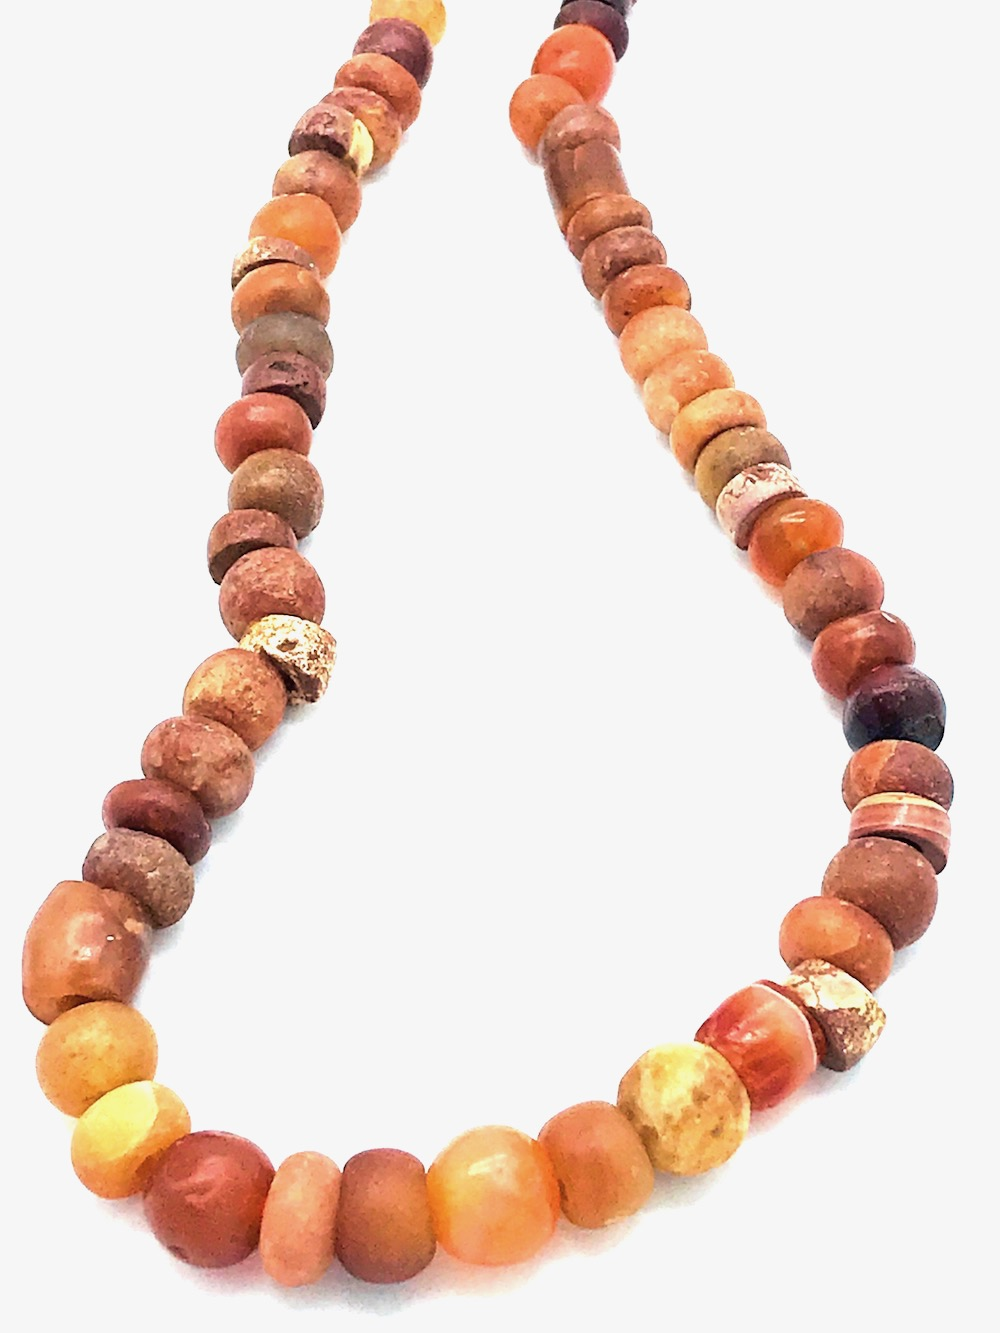 Mali, West African Tribal, Hand-Painted Calcite Bead Necklace